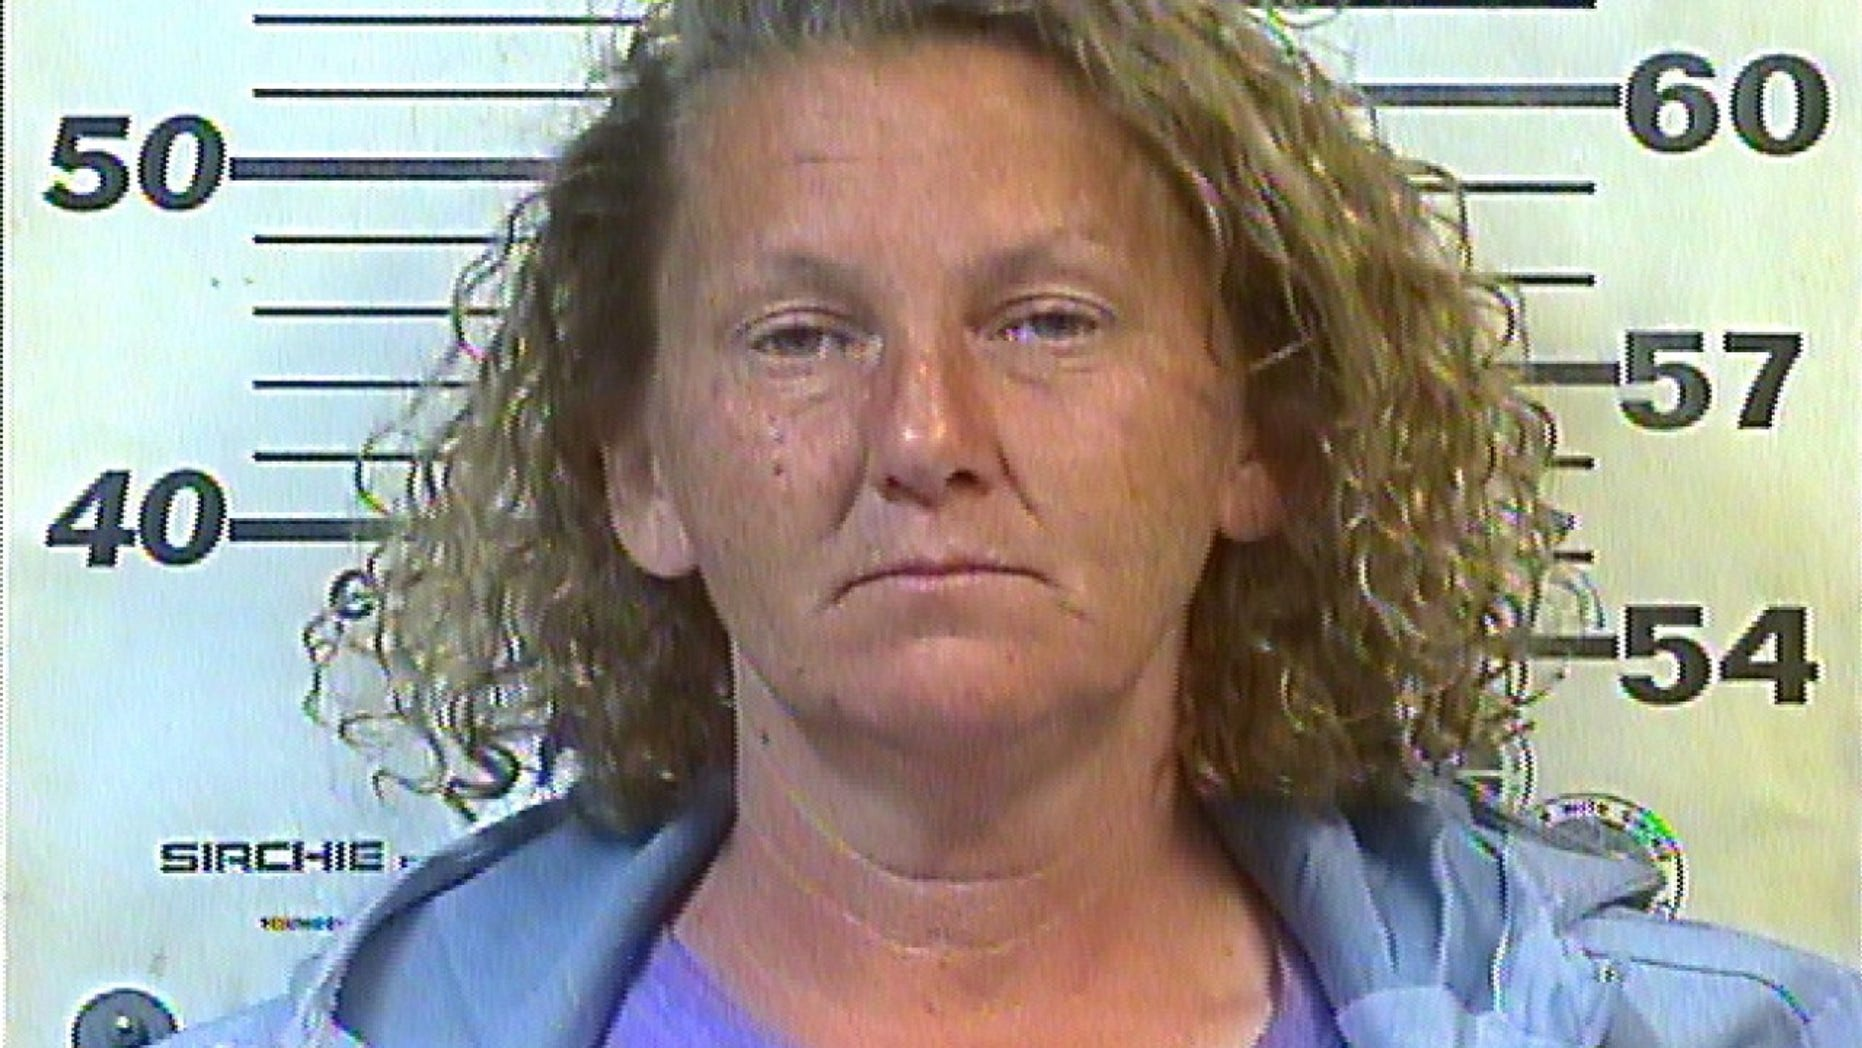 Sally Selby, 45, was arrested on theft charges.